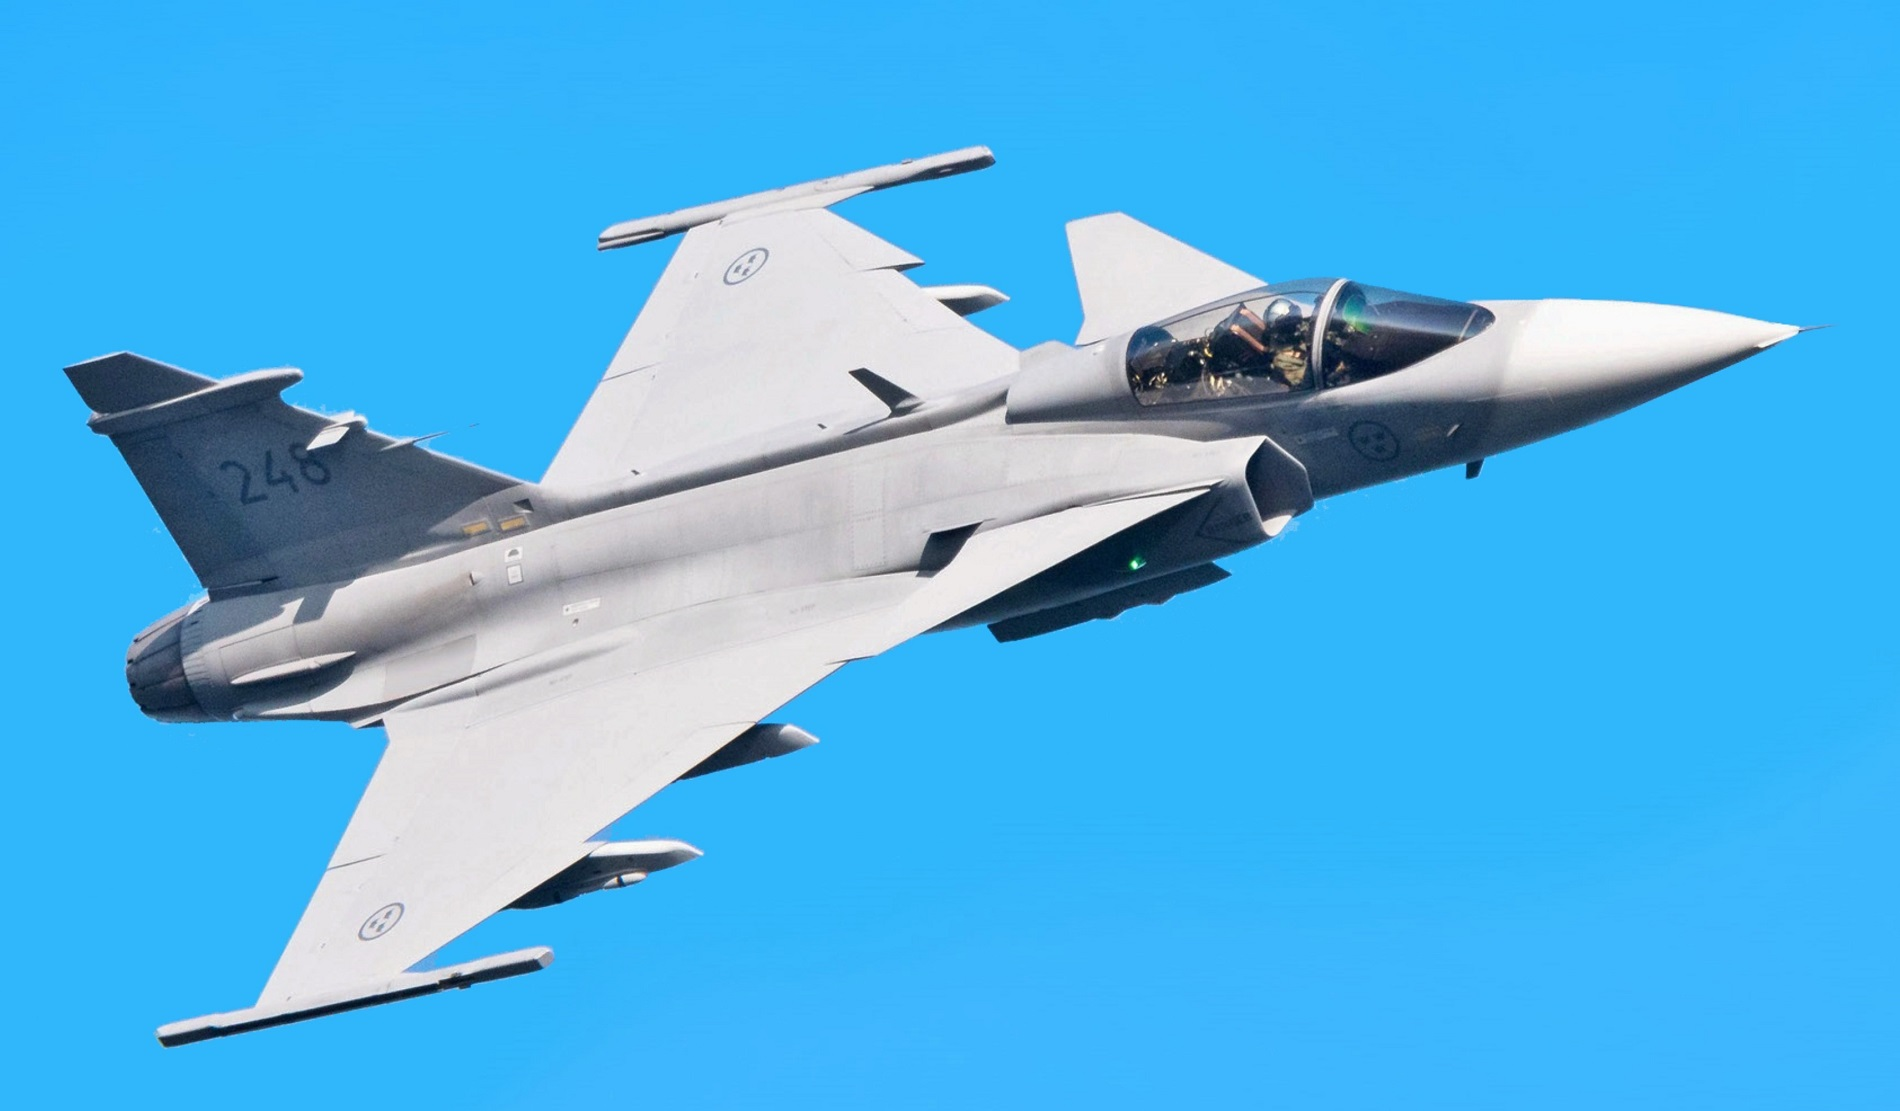 JAS-39 Gripen: The Deadly Fighter Jet That Is Cheap, Easy to